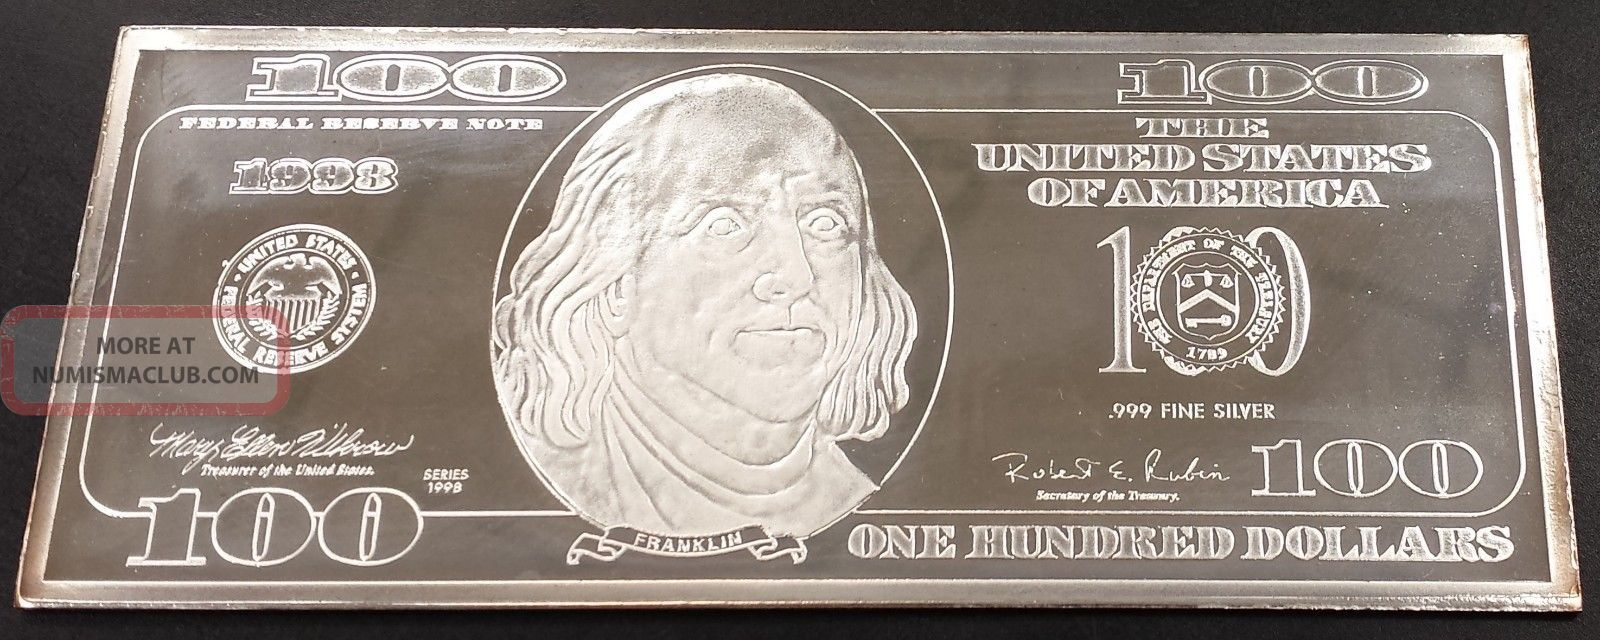 Washington 4 Troy Oz Silver Bar Patterned After A One